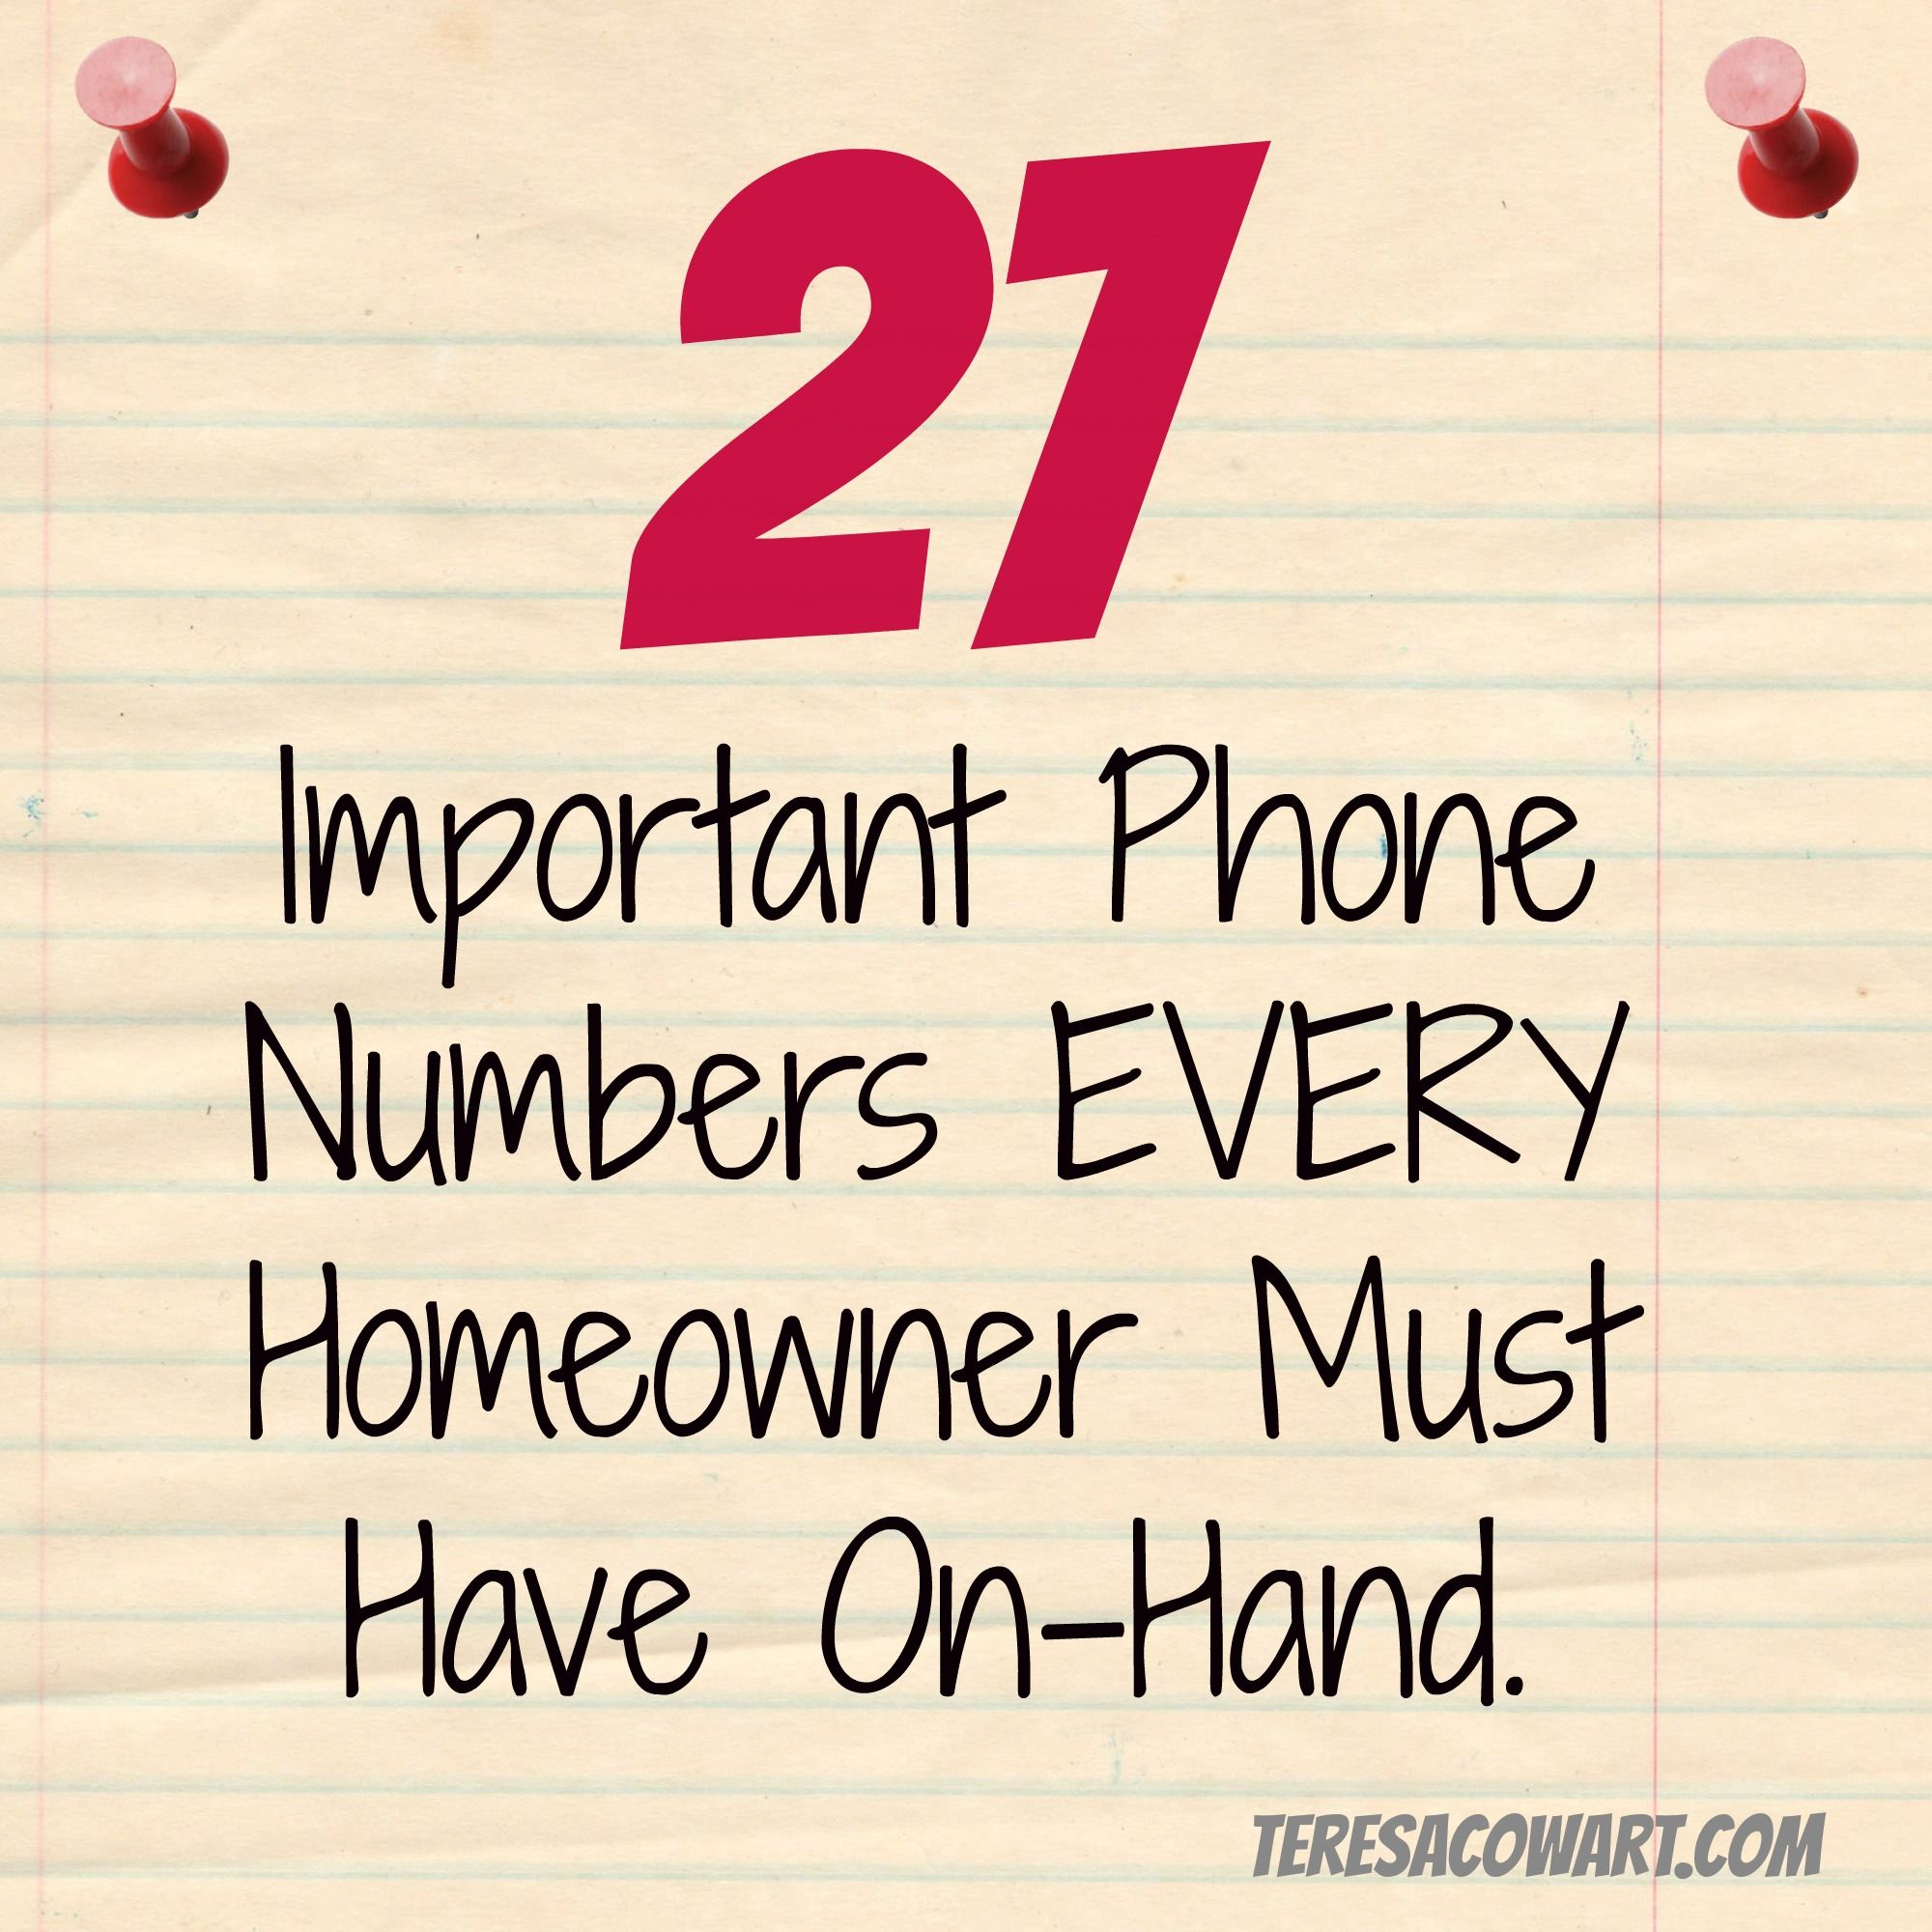 27 Important Contact Numbers Every Homeowner Should Have